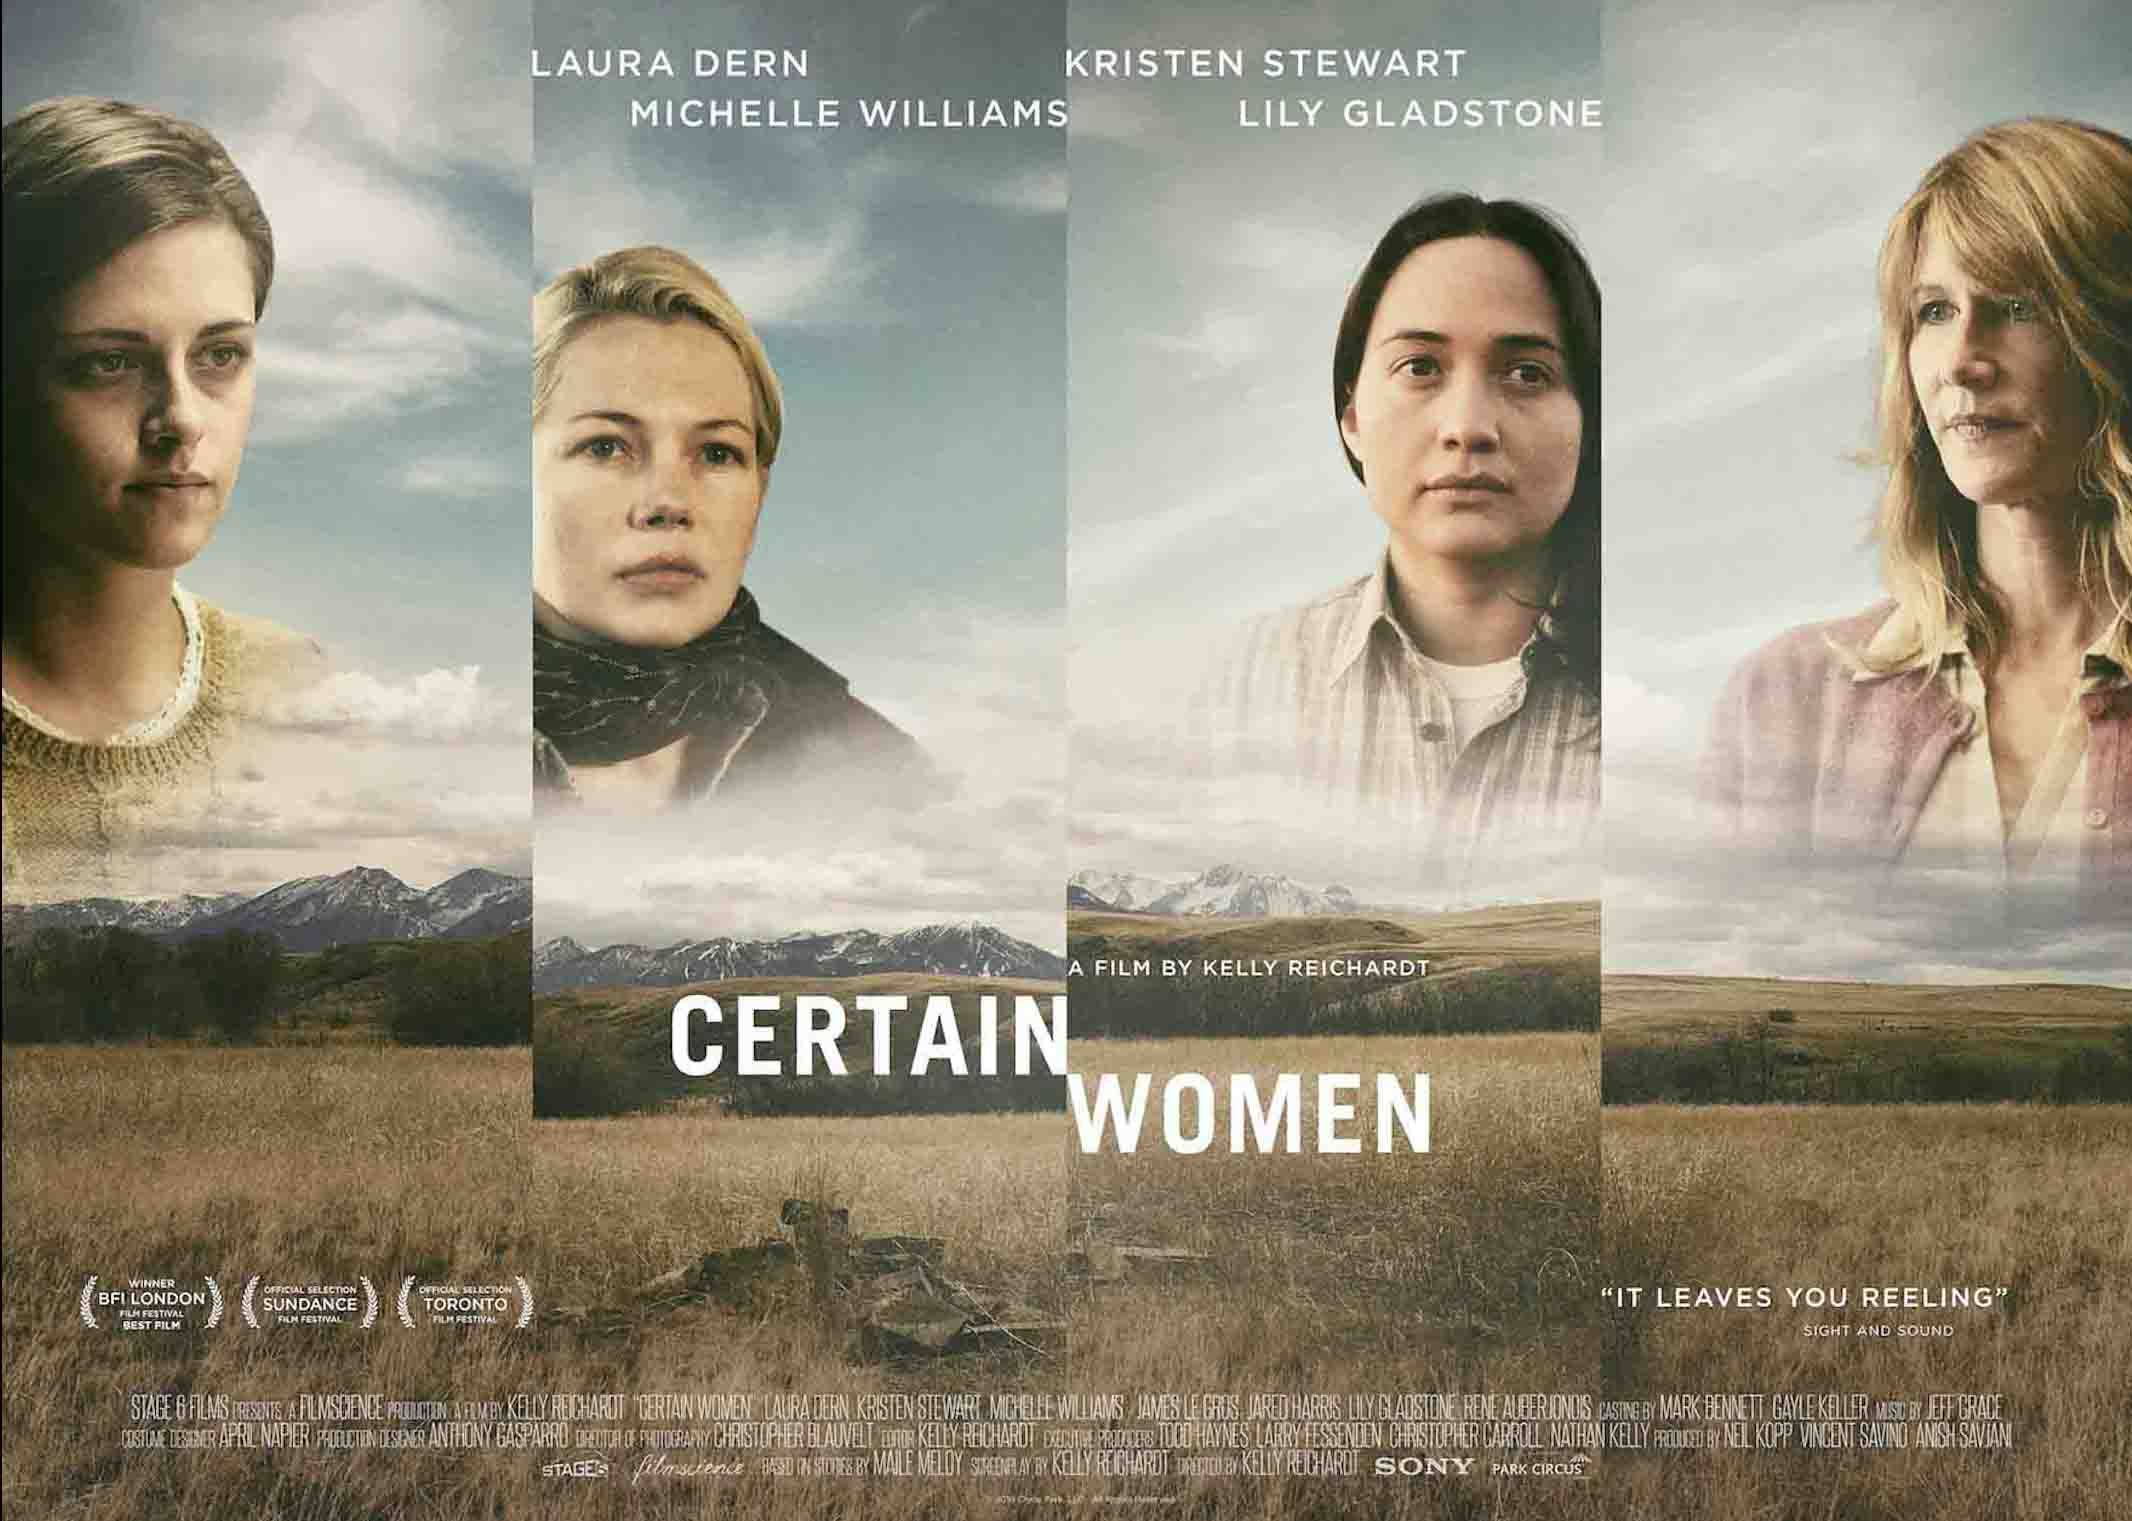 Exclusive: Director Kelly Reichardt on the Making of 'Certain Women'